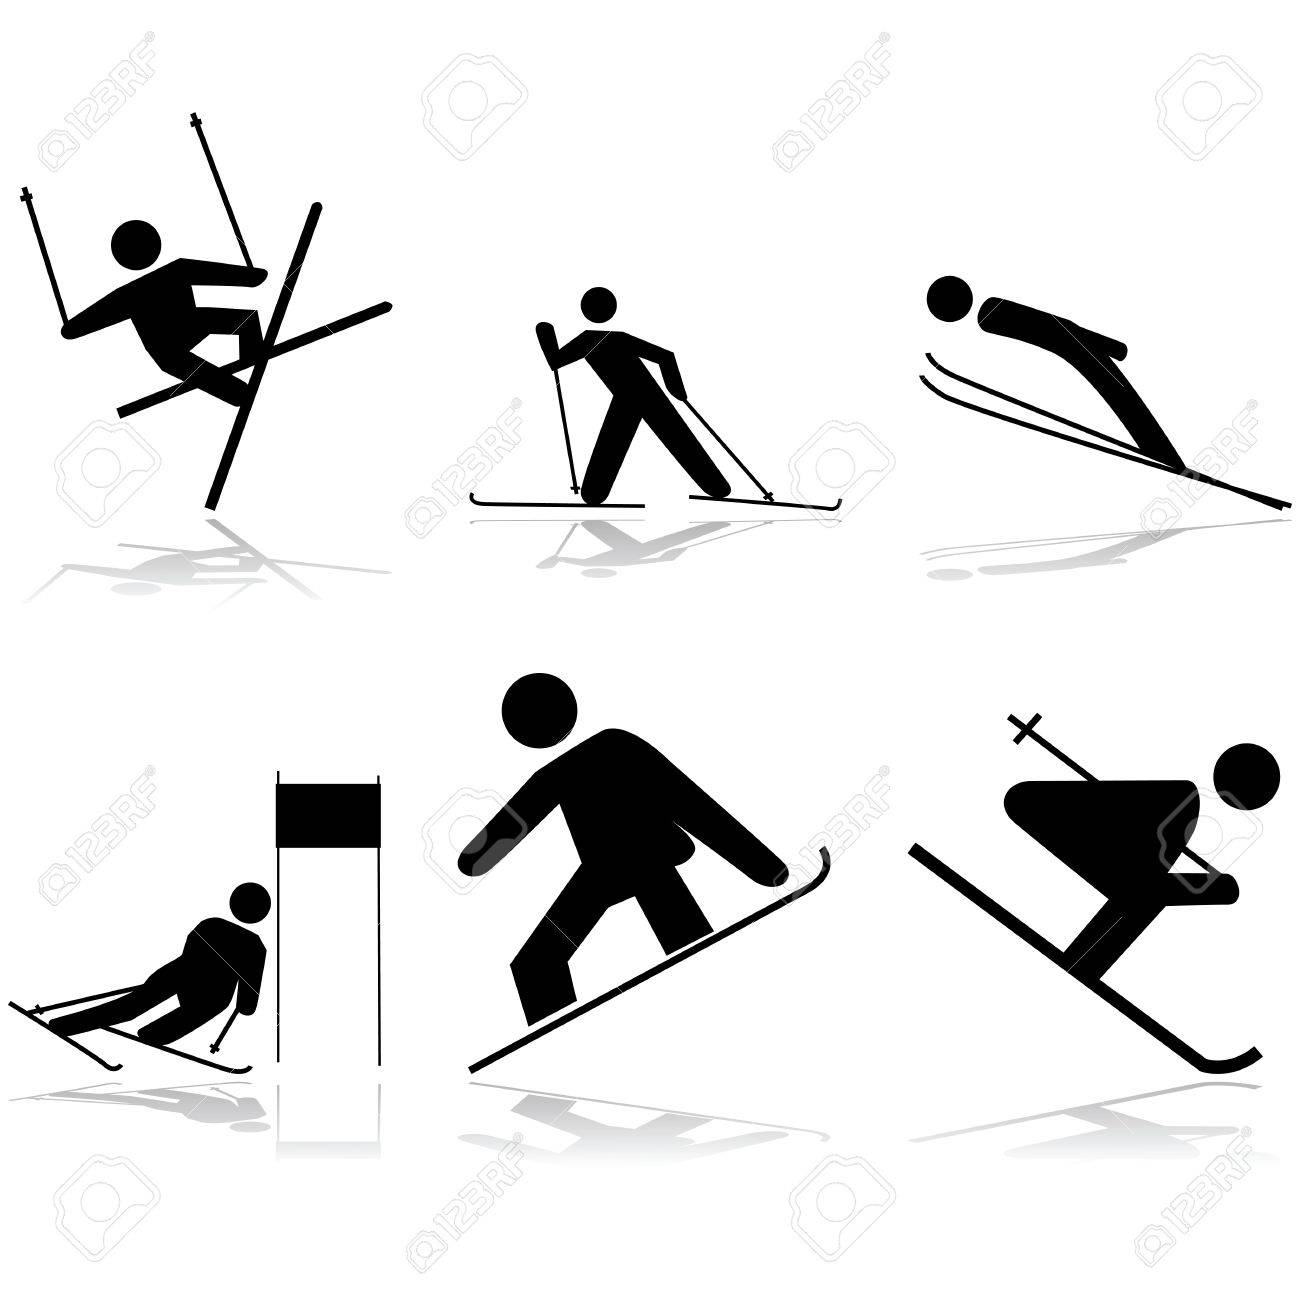 Icon illustrations showing different winter sports performed on snow surfaces Stock Vector - 16731250